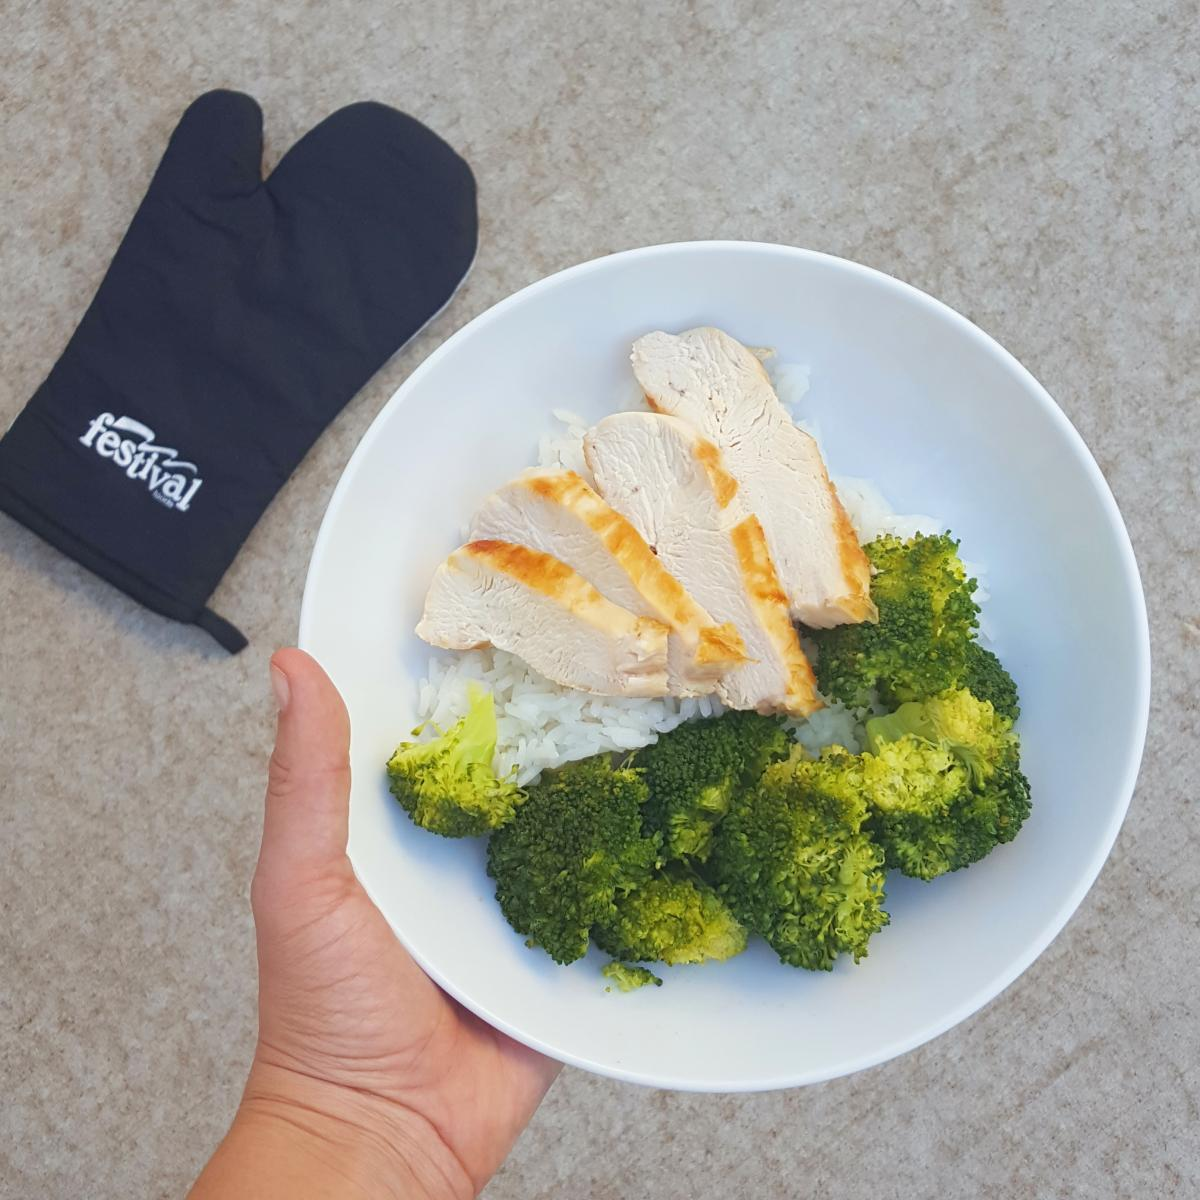 Plate of chicken and rice alongside oven mitt